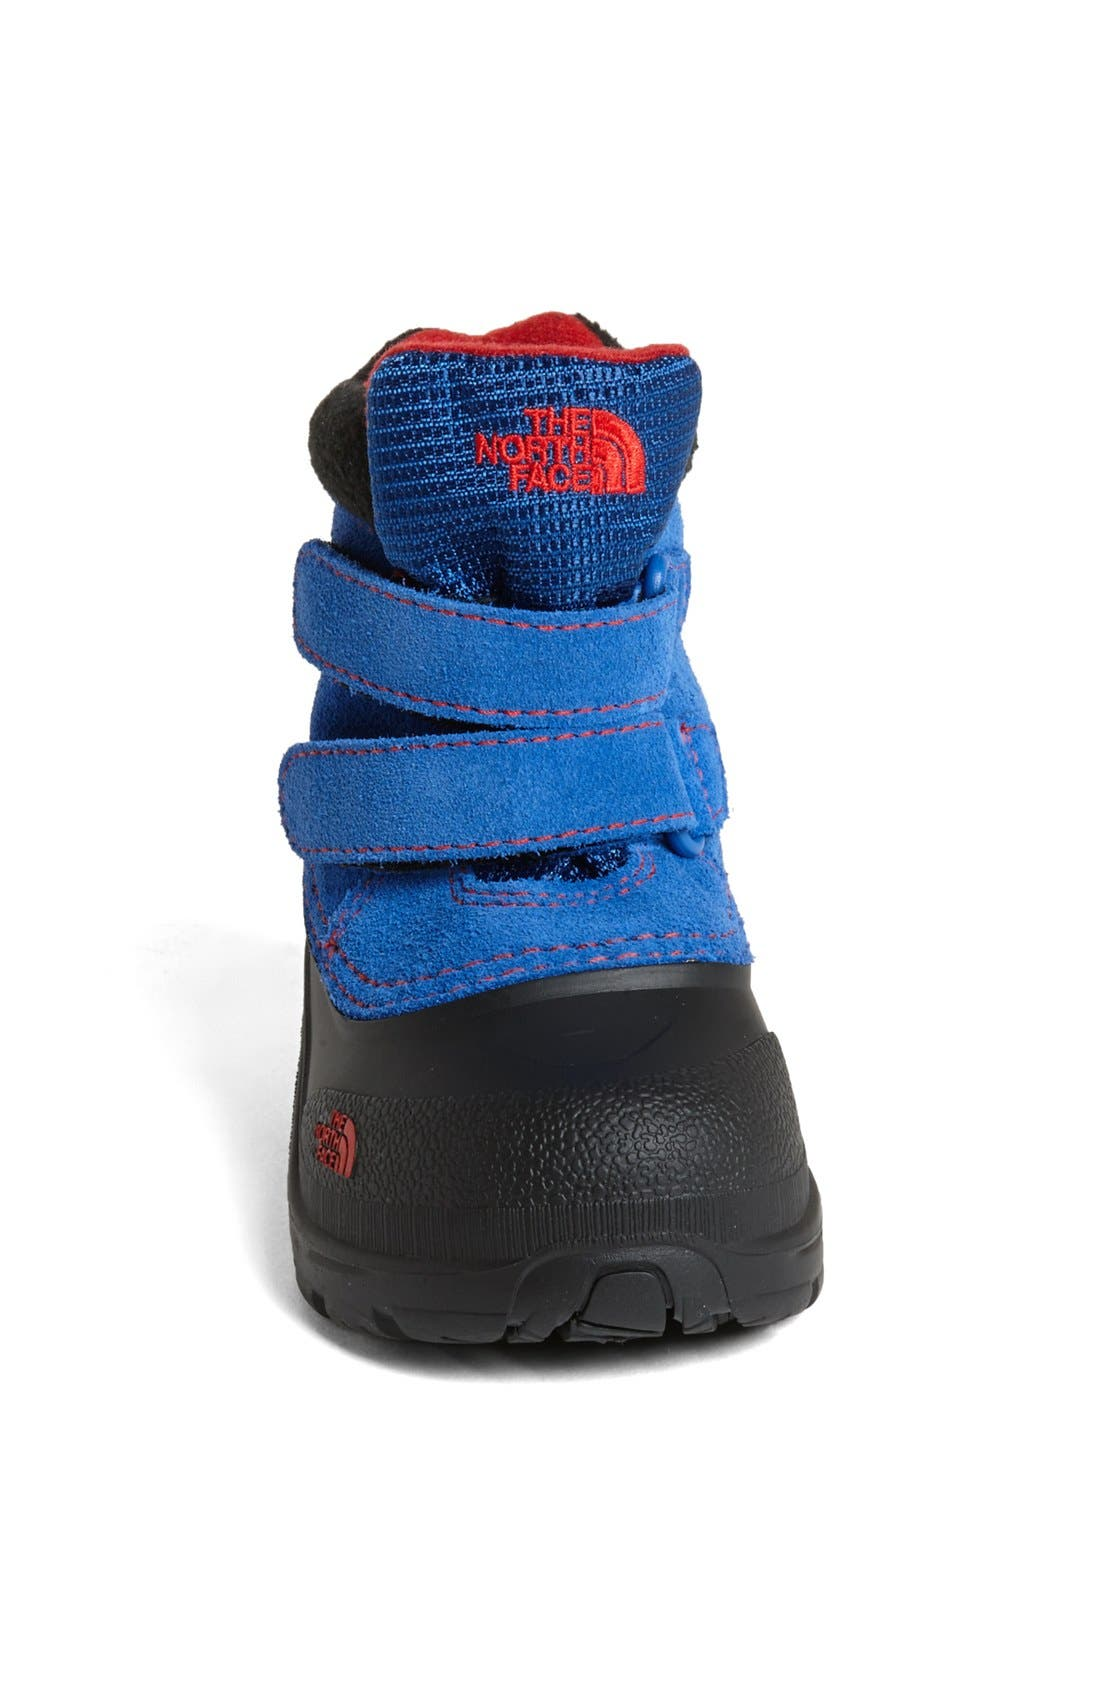 Alternate Image 3  - The North Face 'Chilkat' Waterproof Snow Boot (Walker & Toddler)